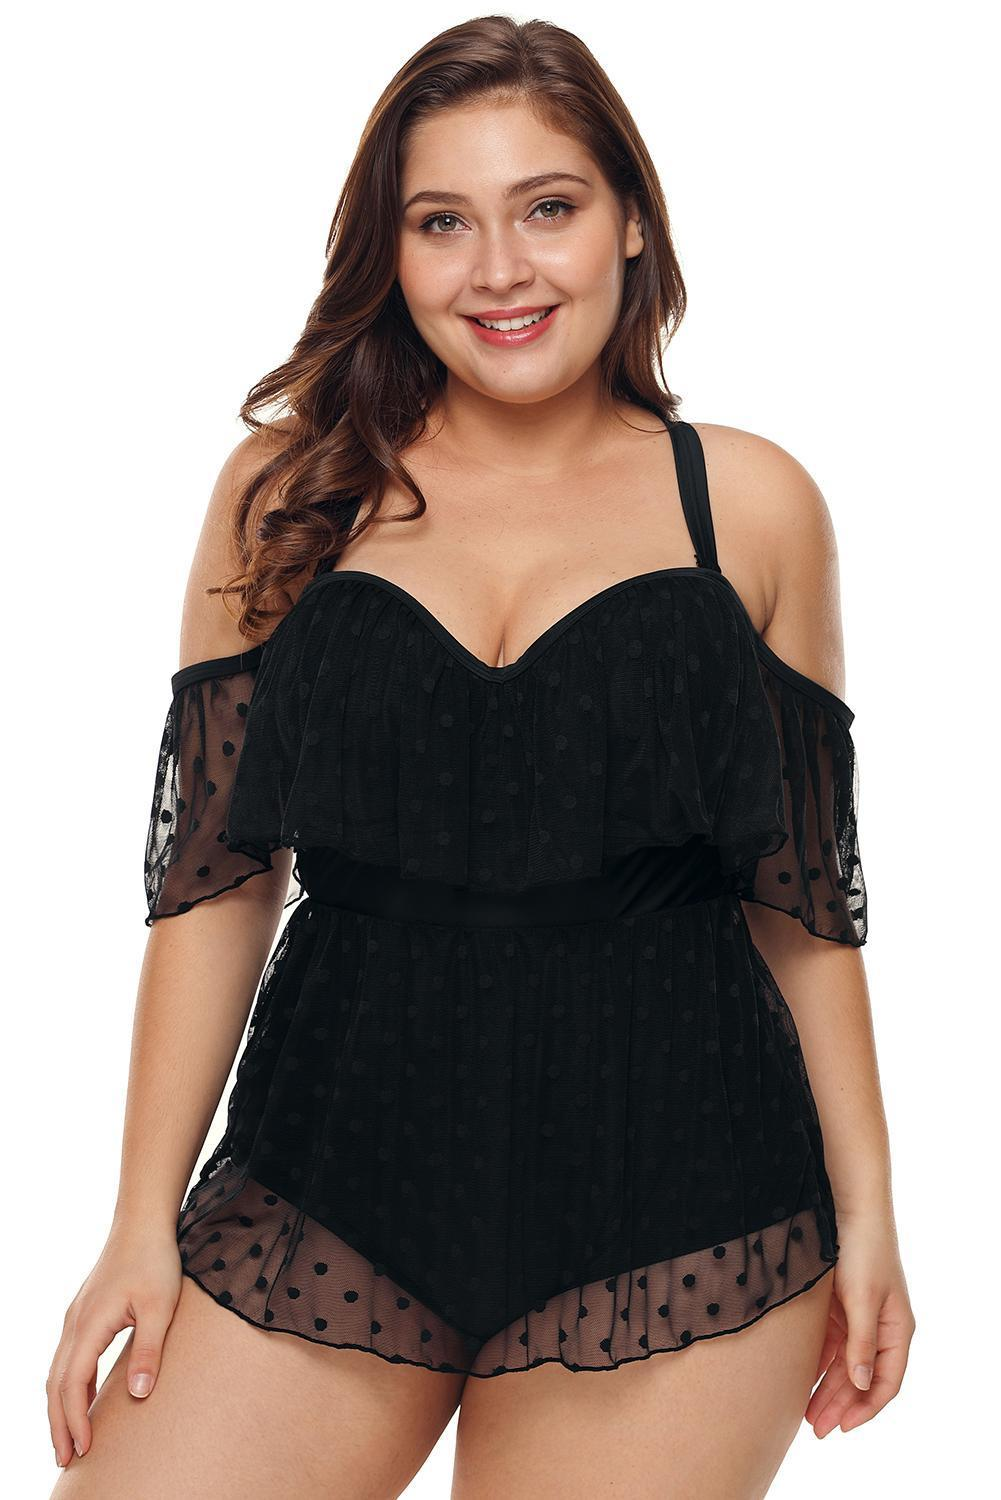 plus size One Piece aa. Chanel One Piece